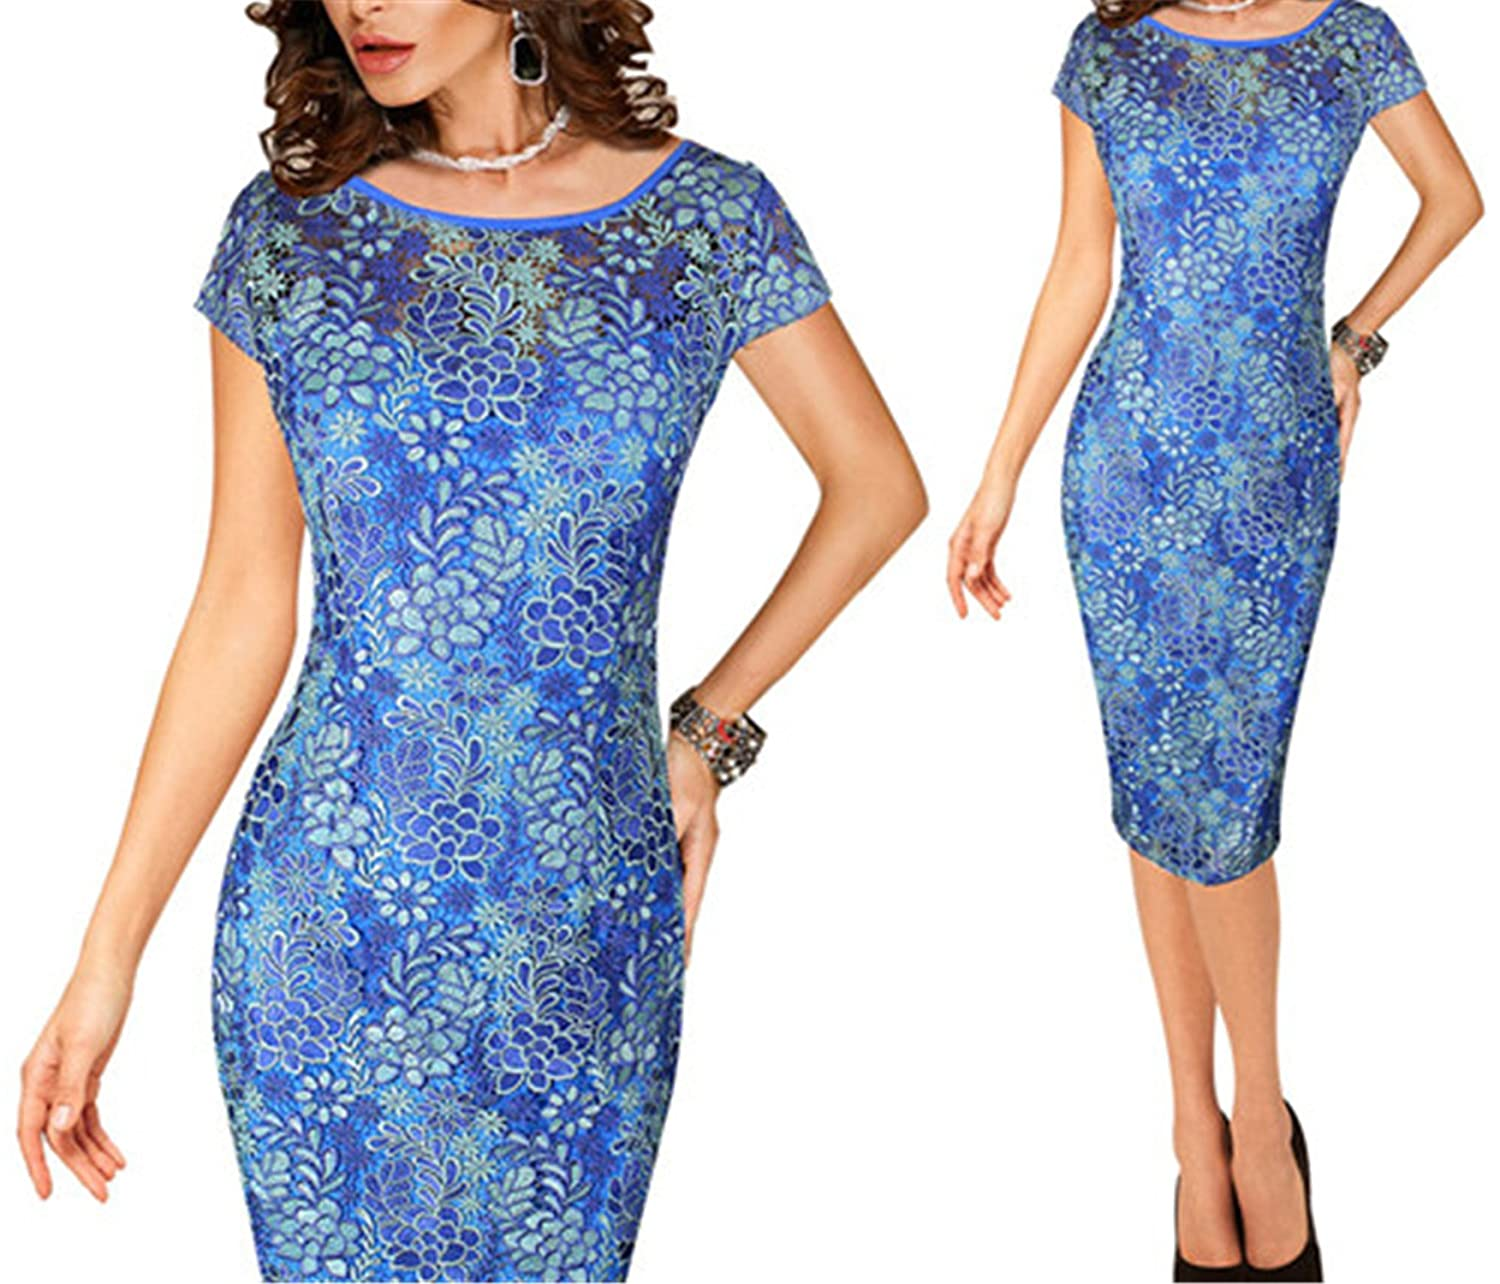 bluee and Beige Ivan Johns Dresses Elegant Sexy Crochet Hollow Out Pinup Party Evening Special Occasion Sheath Fitted Vestidos Dress 4272